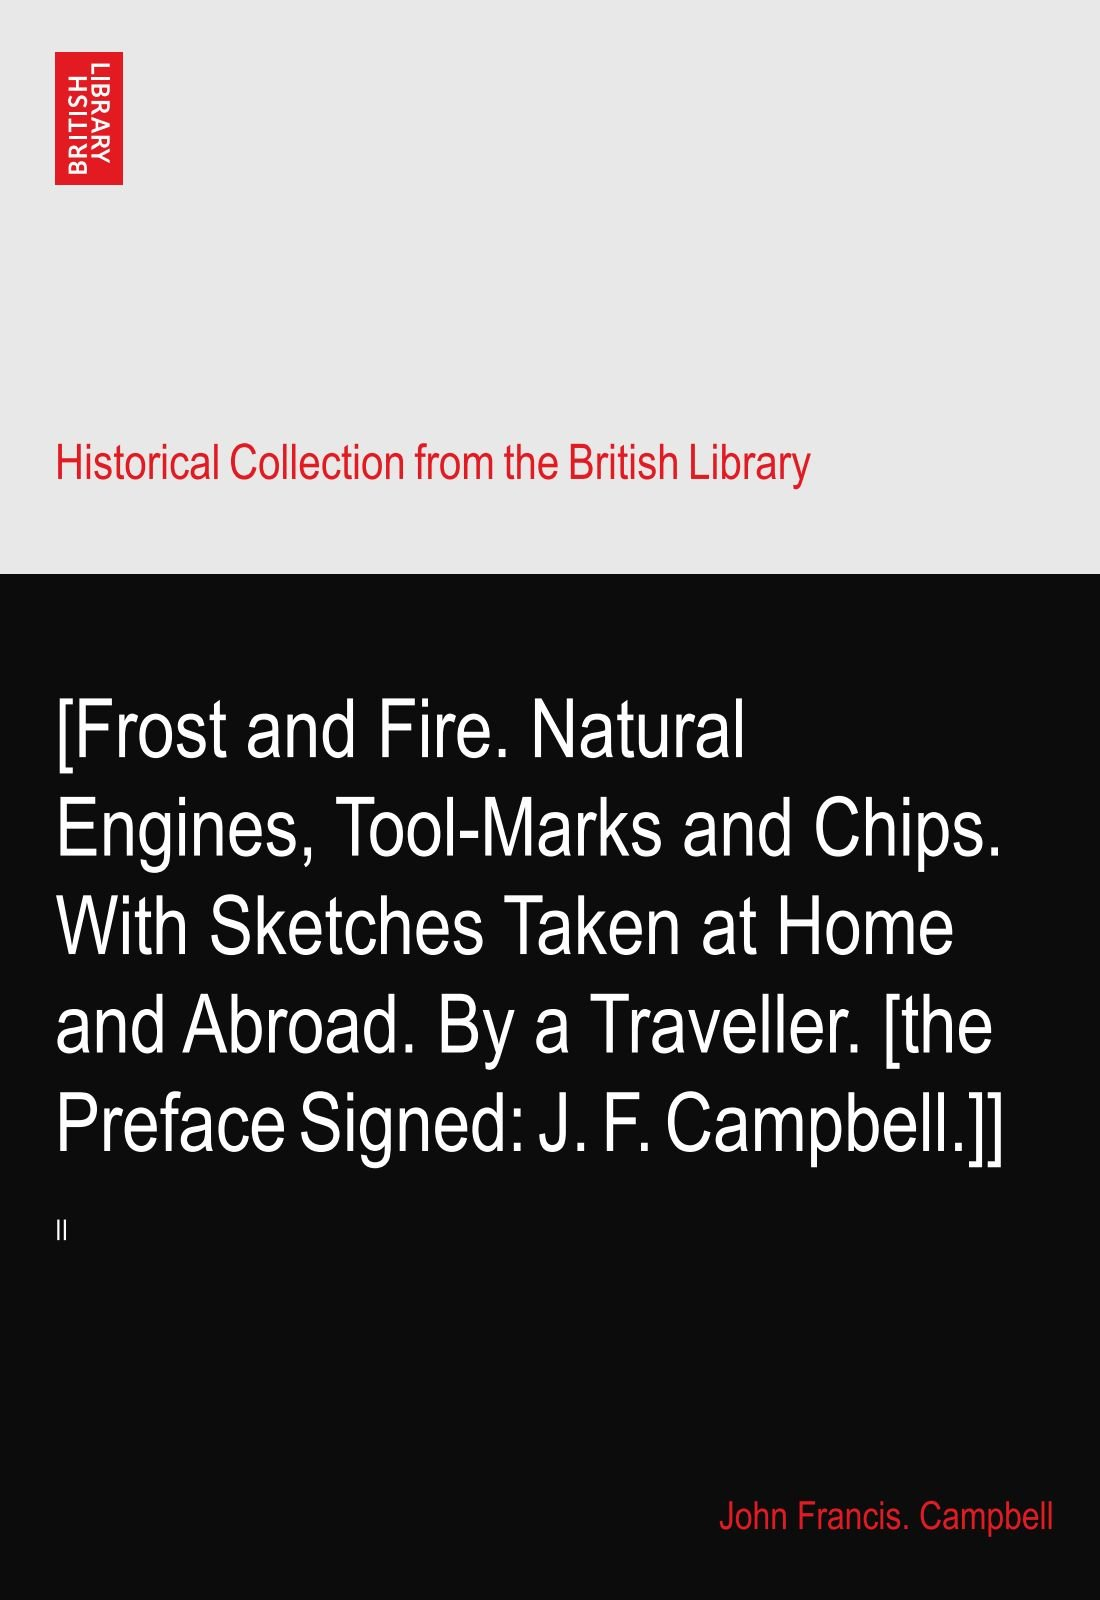 Download [Frost and Fire. Natural Engines, Tool-Marks and Chips. With Sketches Taken at Home and Abroad. By a Traveller. [the Preface Signed: J. F. Campbell.]]: II PDF